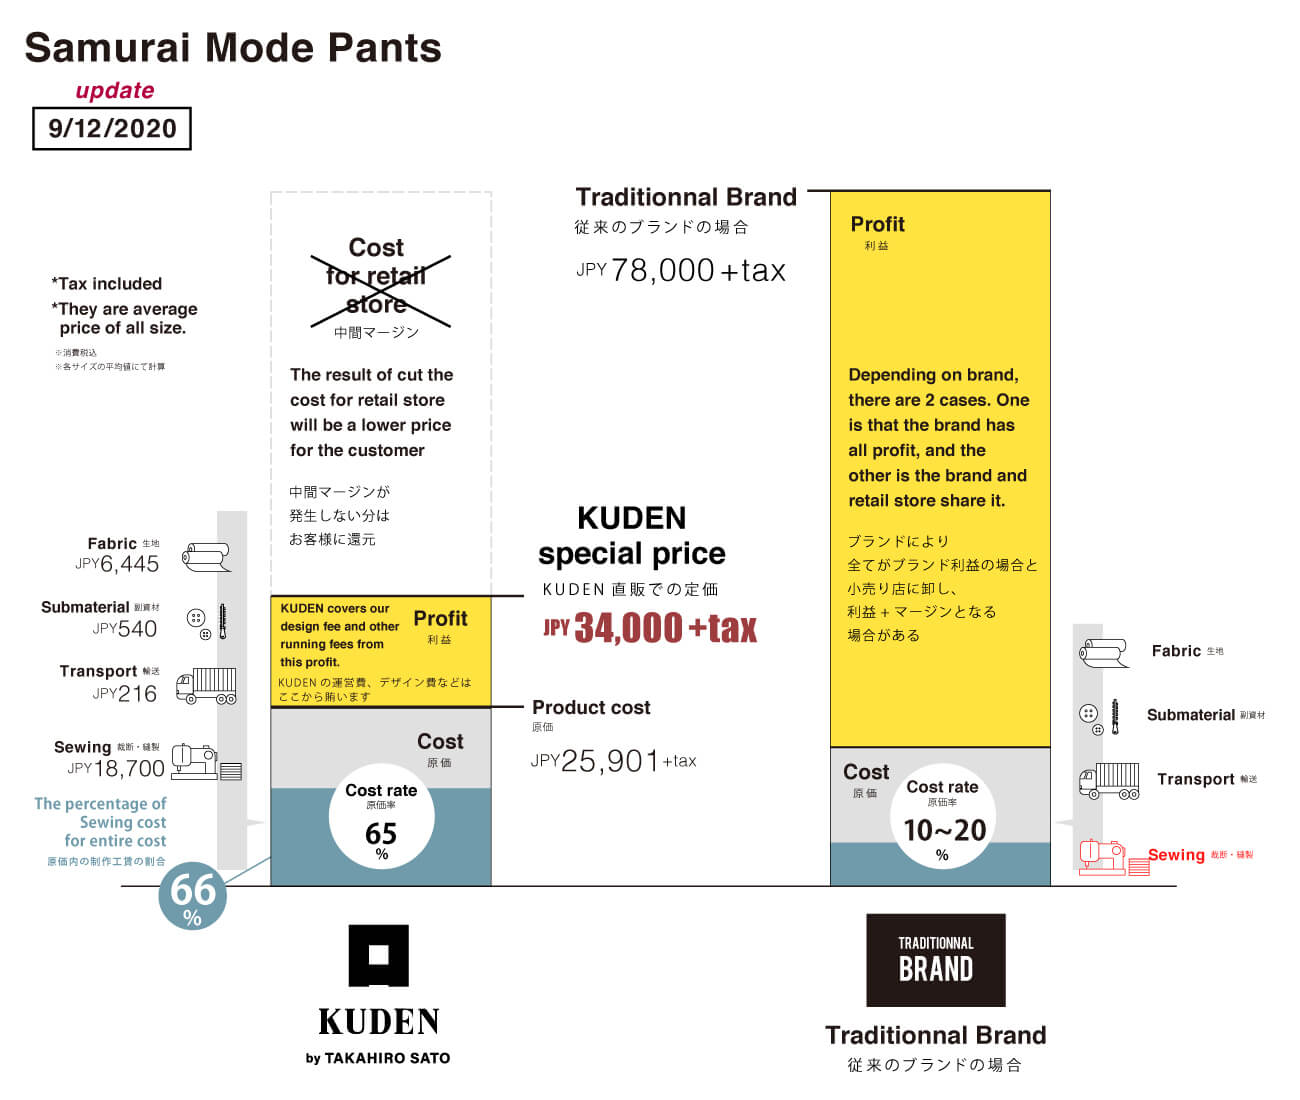 Price sheet of Samurai Mode Pants, Next Kimono Samurai Mode Series from KUDEN by TAKAHIRO SATO